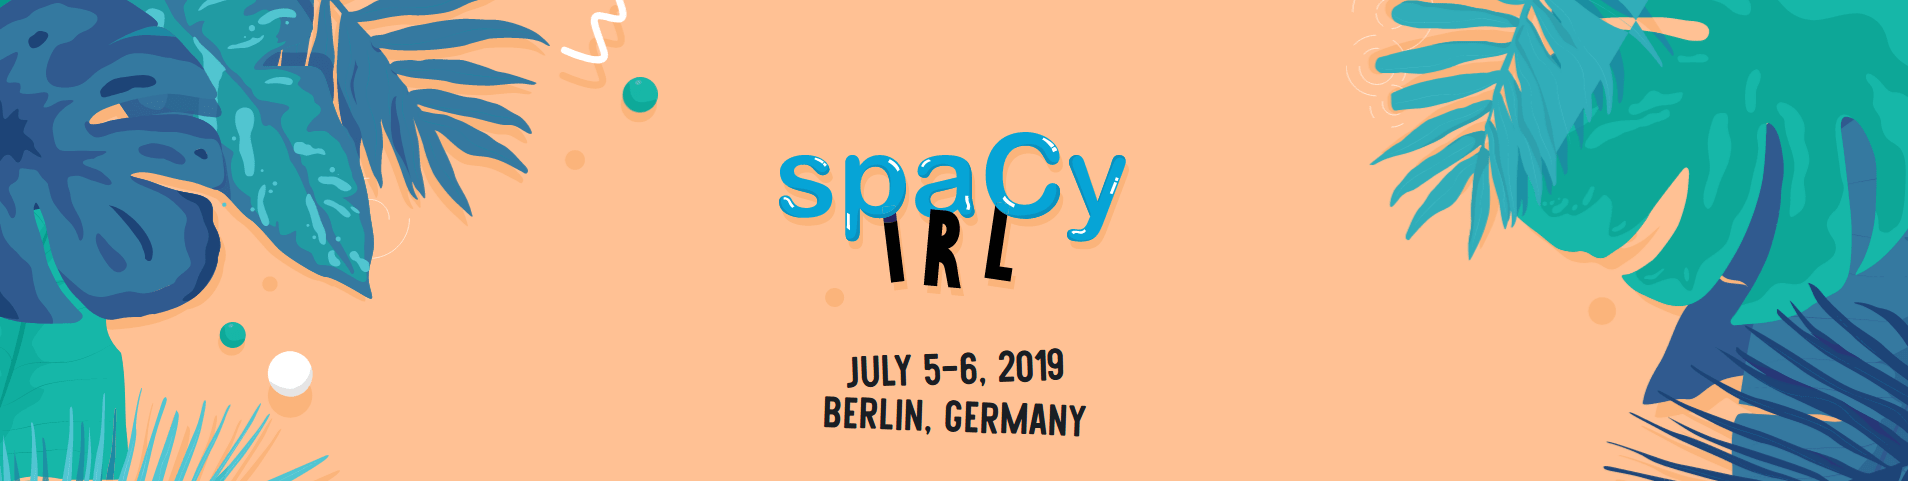 spaCy IRL Banner